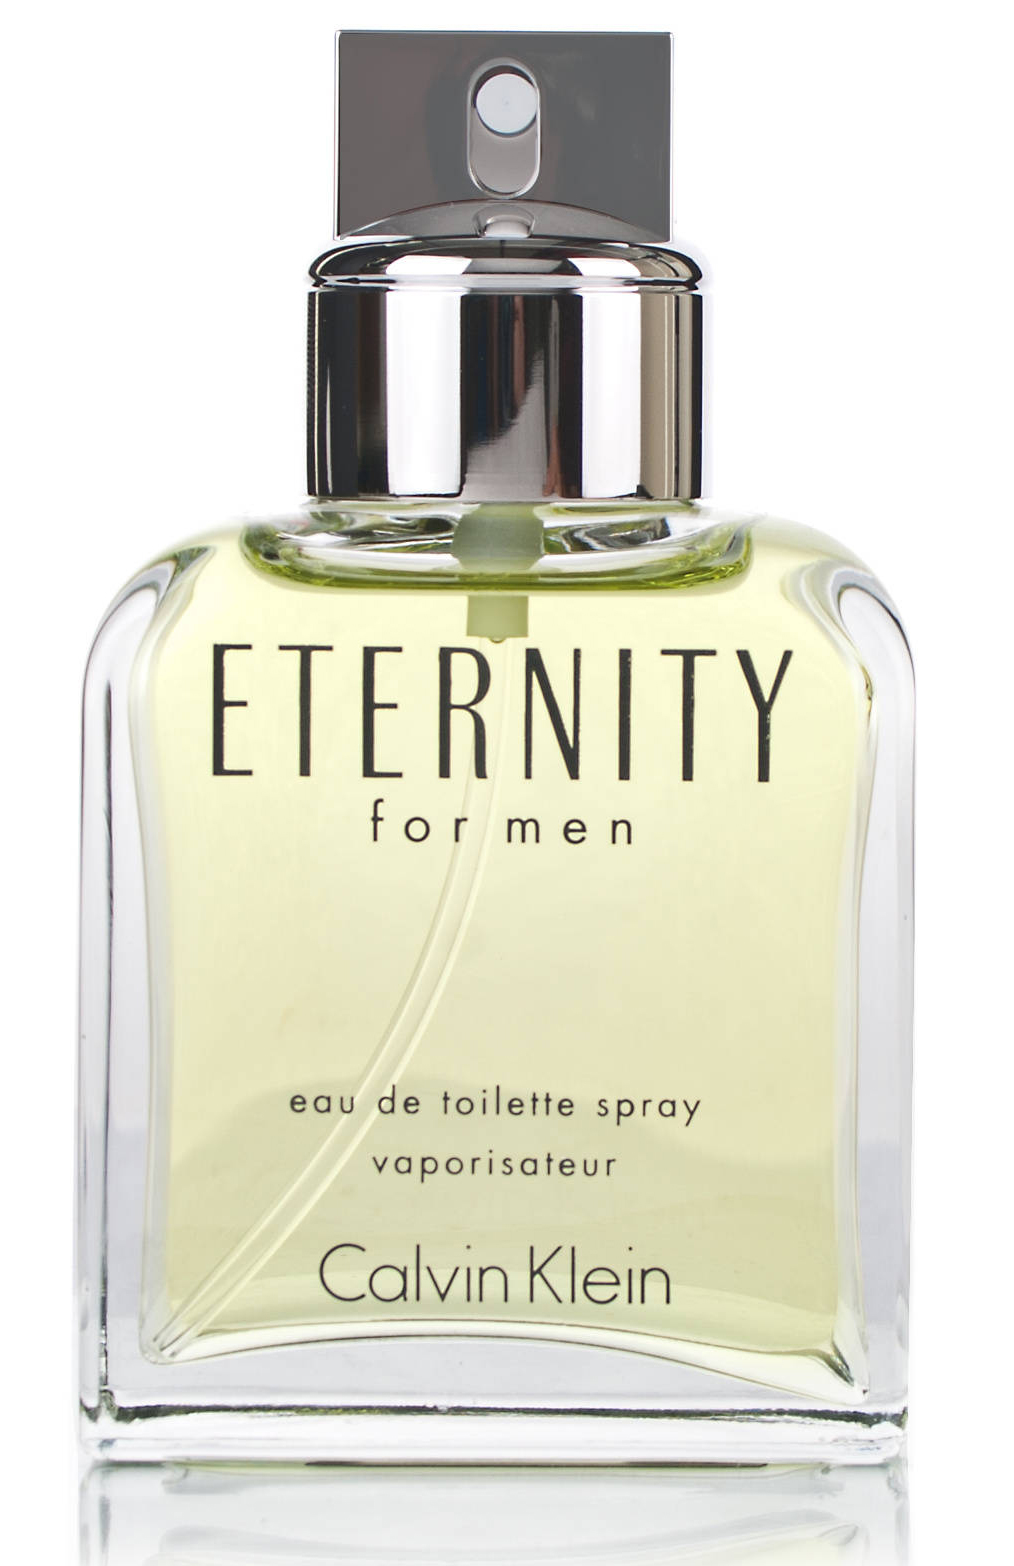 eternity for men calvin klein cologne a fragrance for. Black Bedroom Furniture Sets. Home Design Ideas